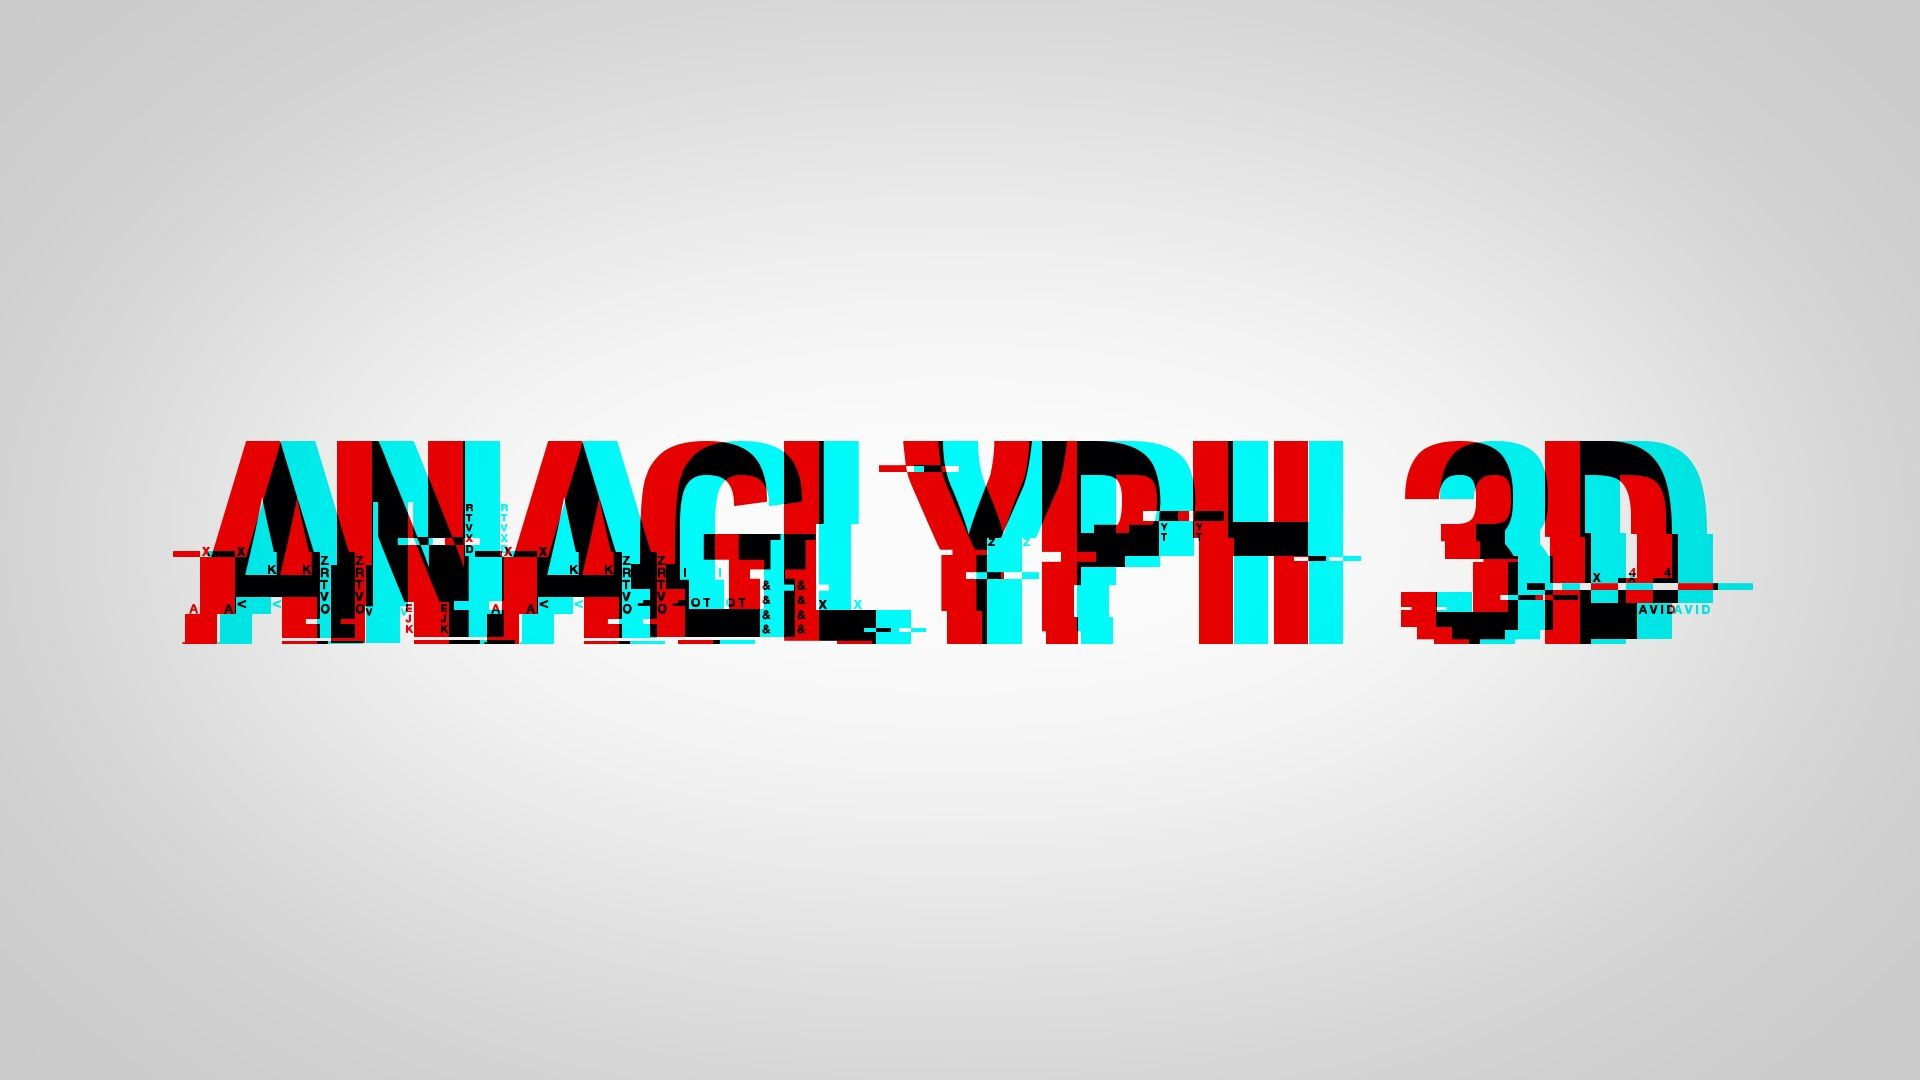 Simple And Quick Method Of Creating Anaglyph 3d Text Using Gimp Anaglyph 3d Is The Name Given To The Stereoscopic 3d Effect Achie 3d Text Texts Photoshop Text